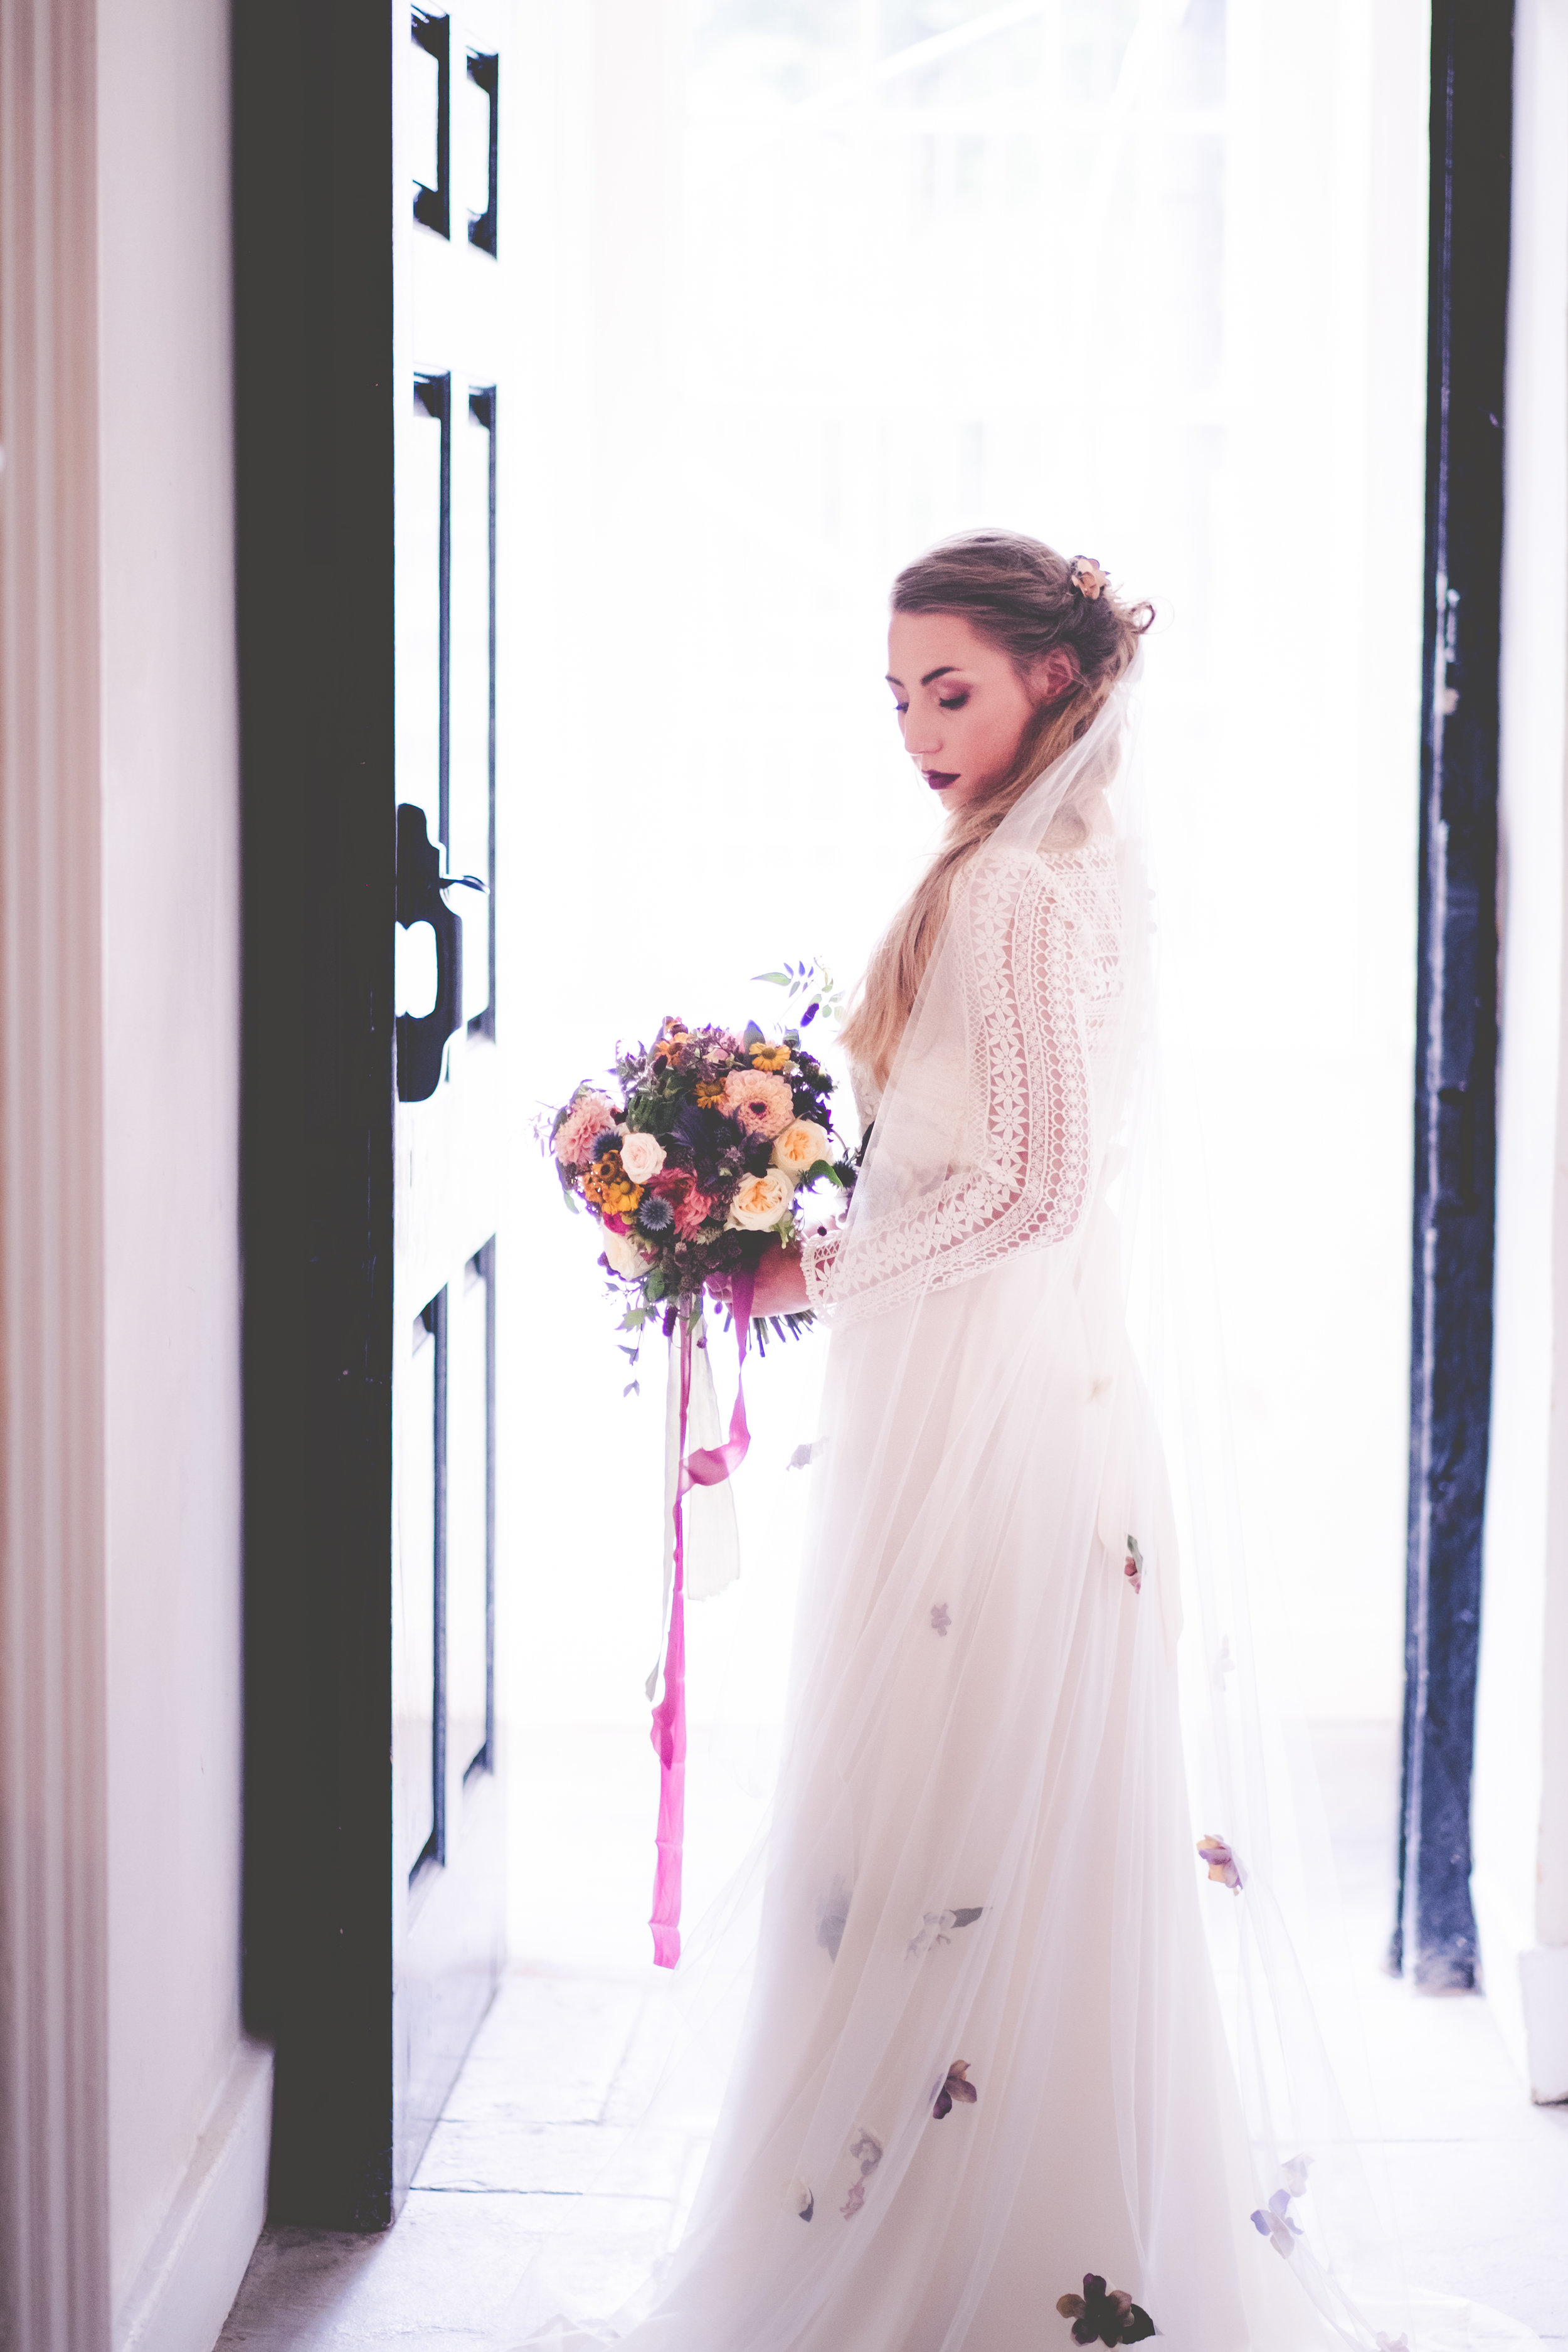 Nanteo's Styled Shoot - Images by Jon Turtle - Photographer-270.jpg